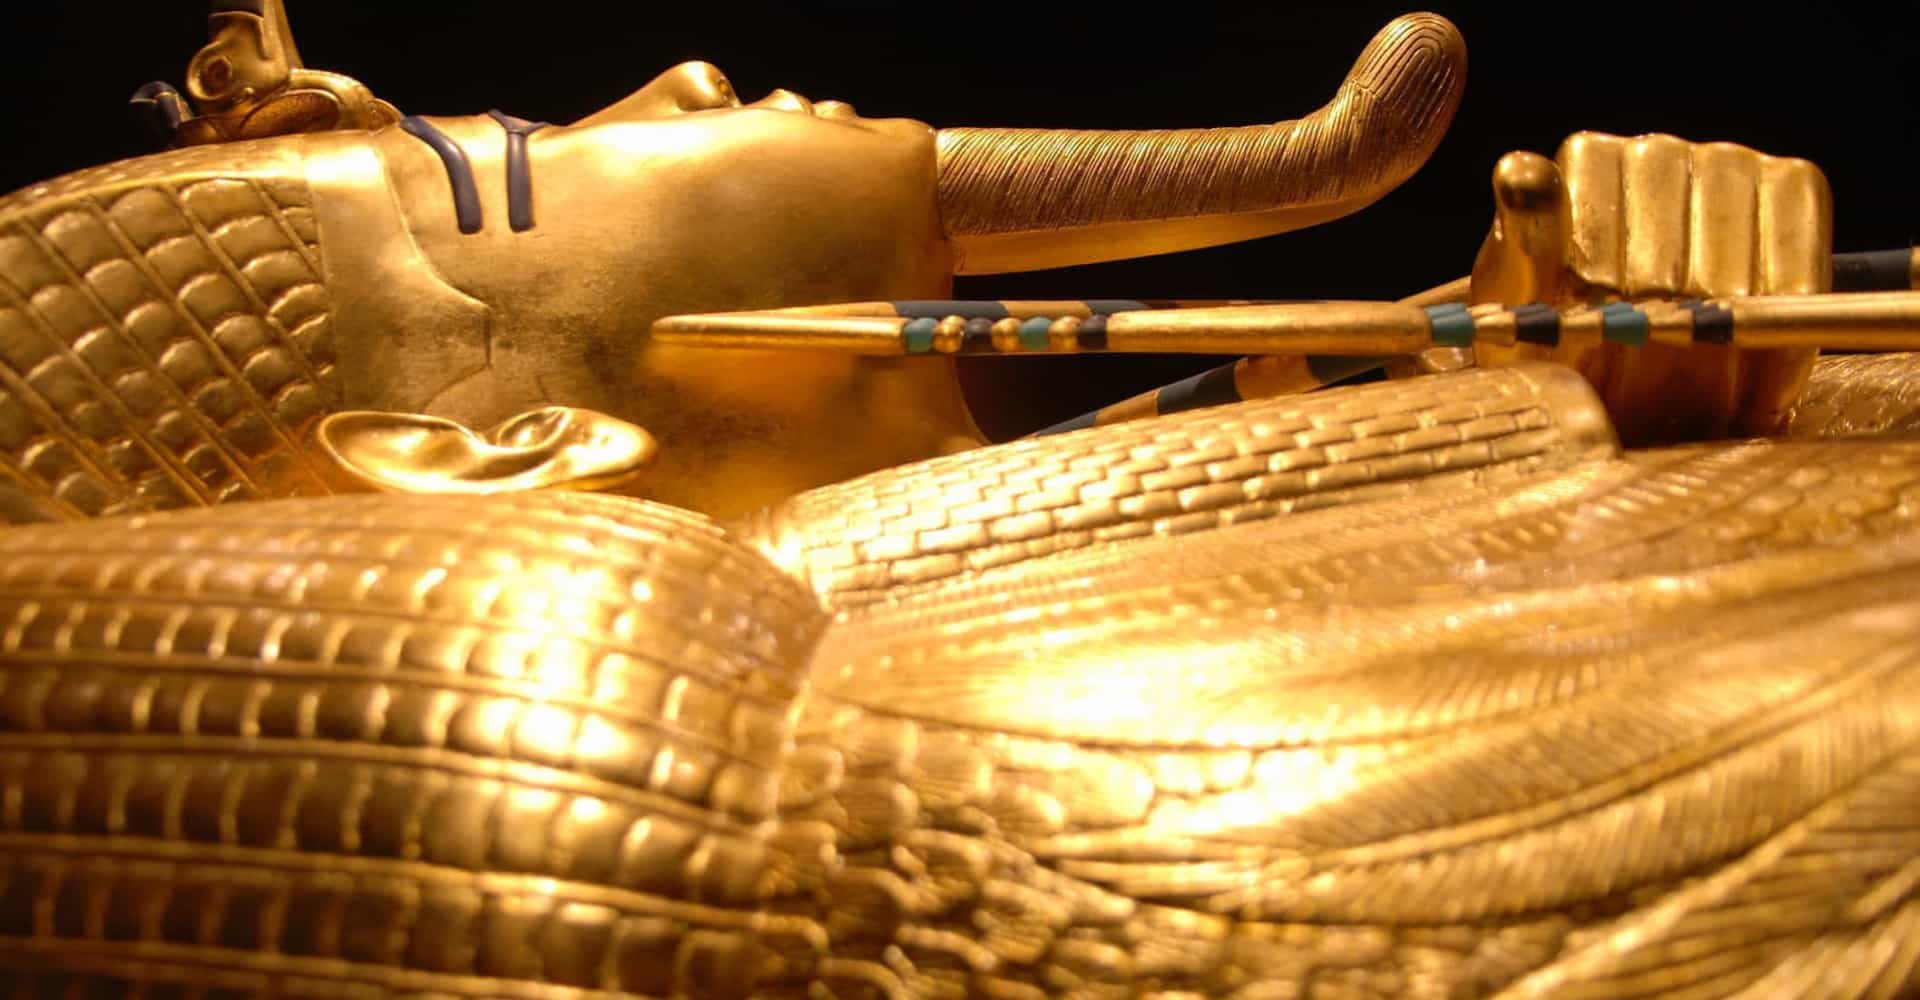 Let's celebrate King Tut Day